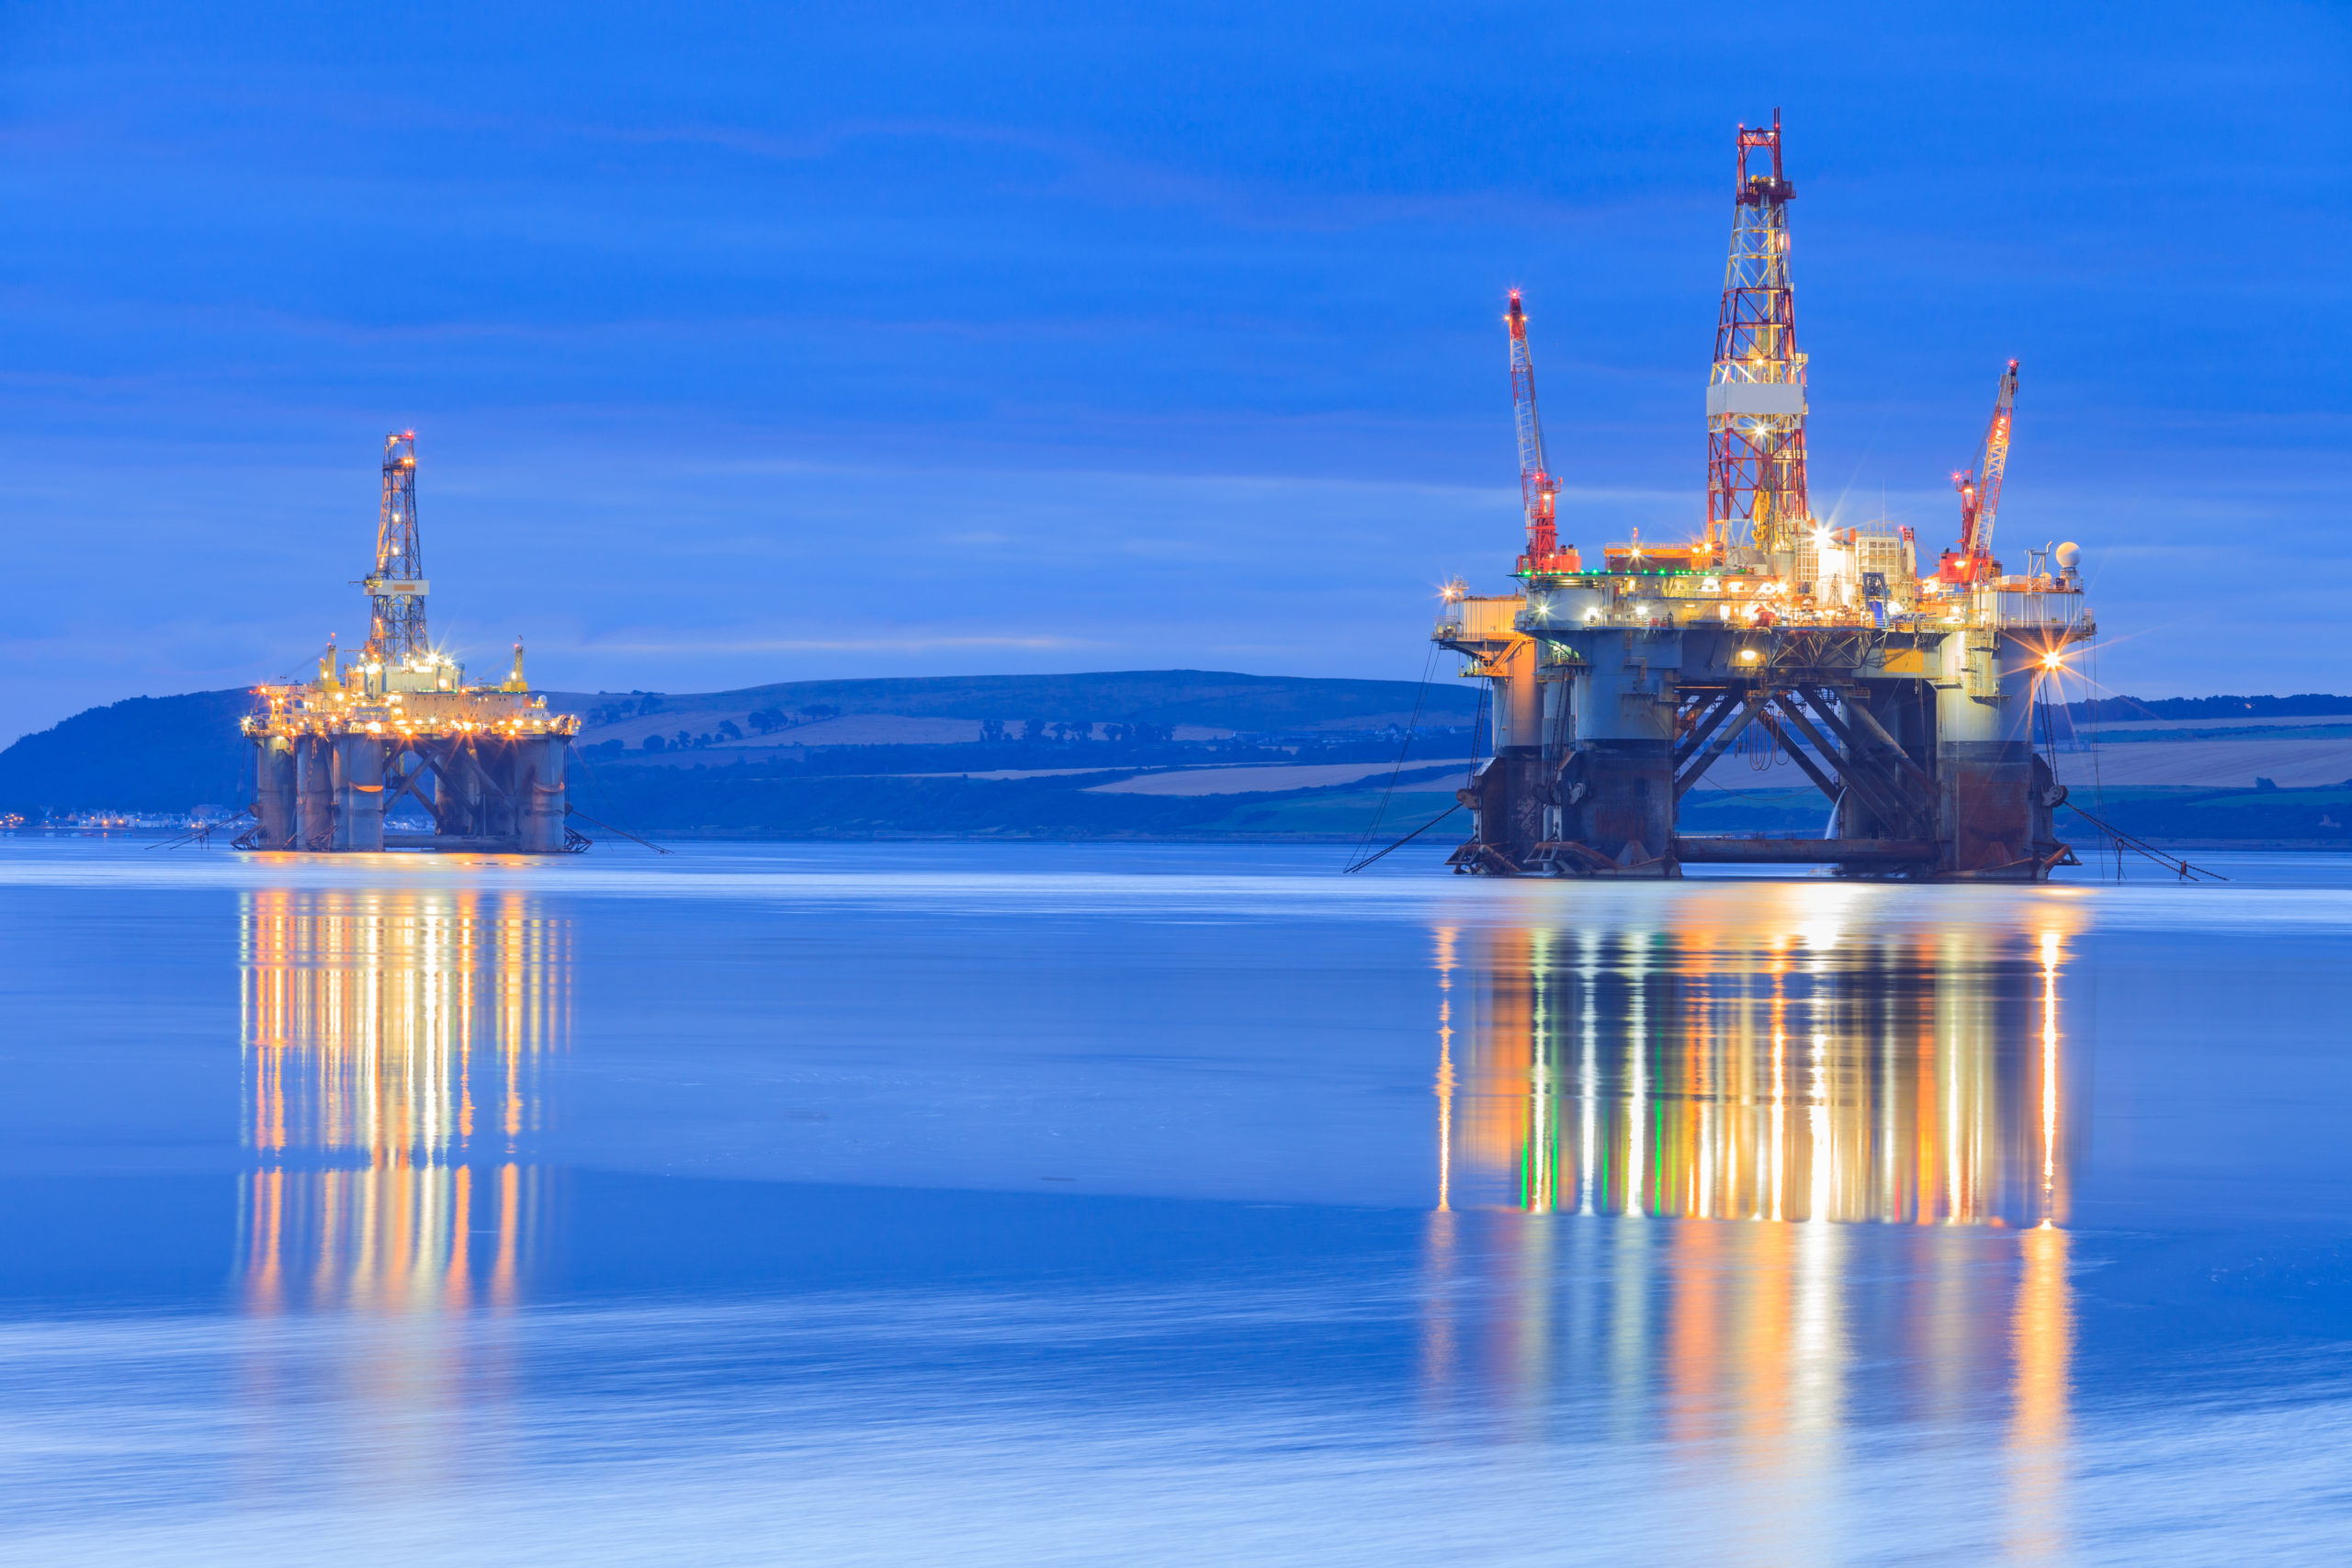 UK offshore oil and gas: continuity or transition in a 'net-zero basin'?